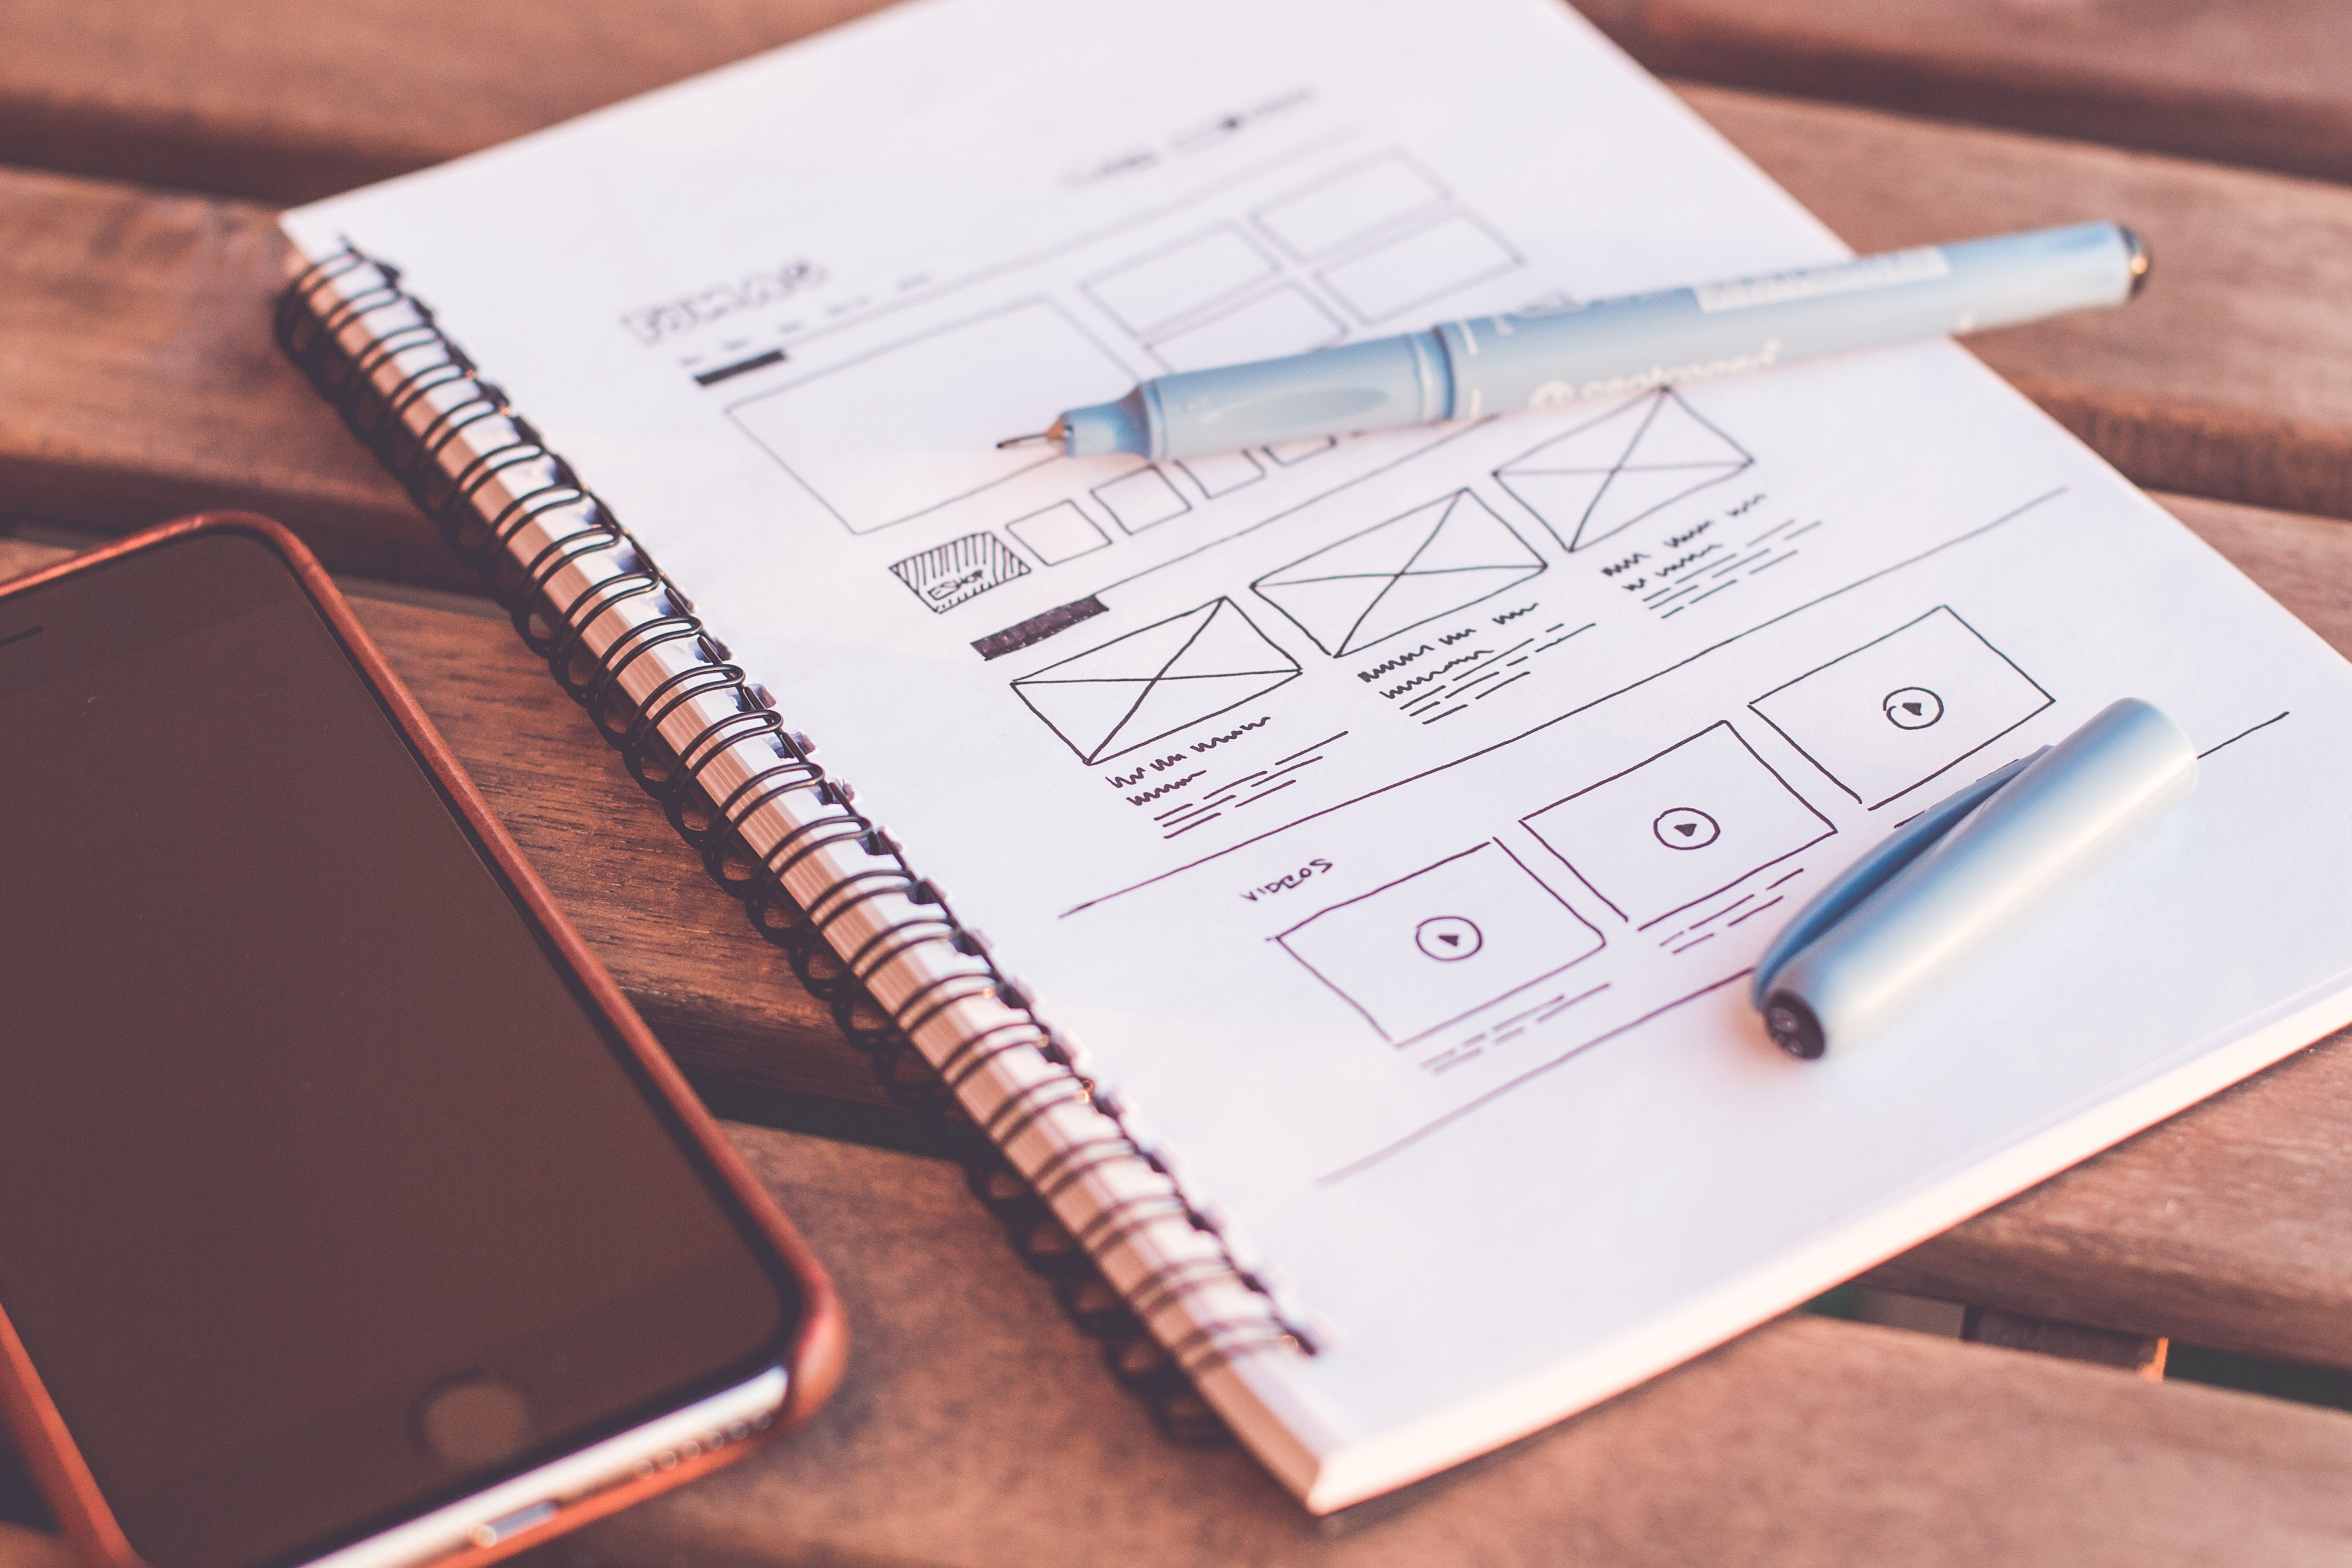 Notepad with UX design wireframes